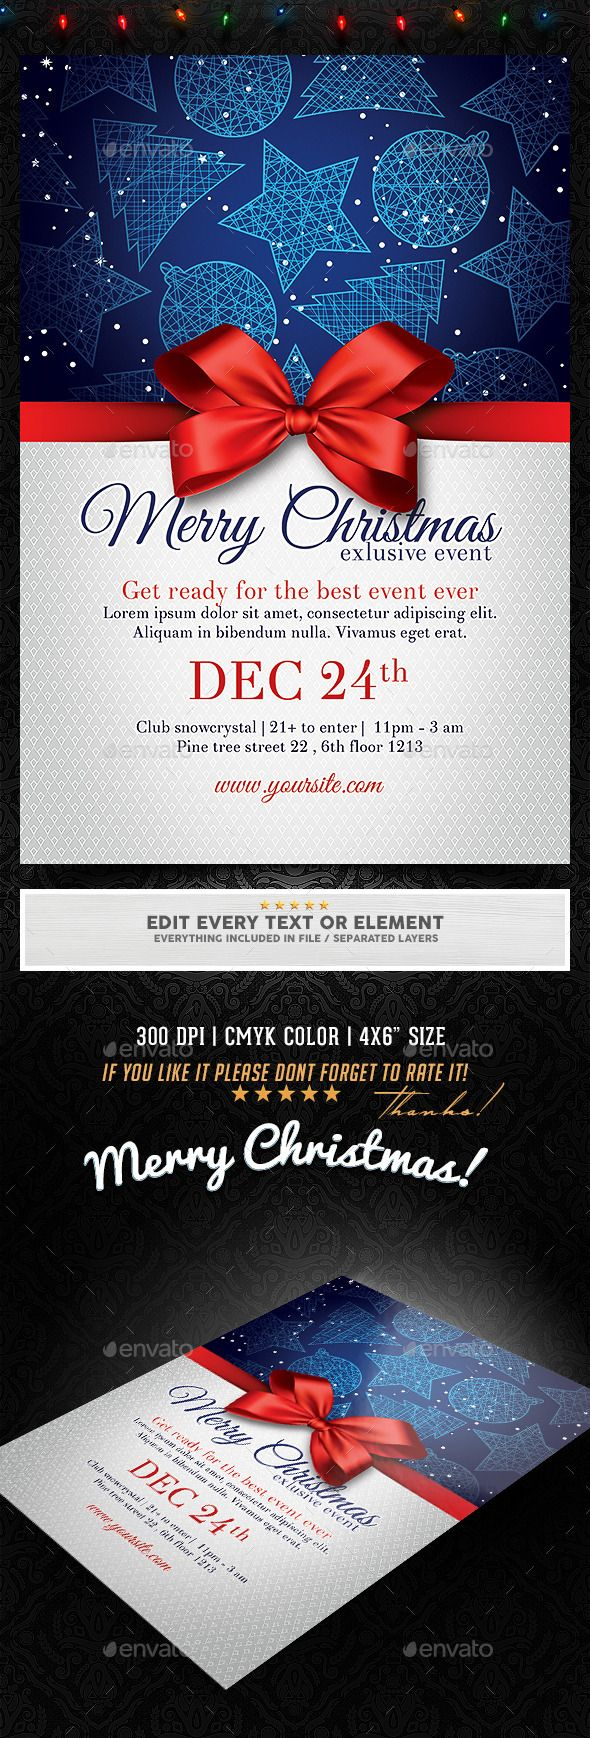 Christmas Invitation / Party Flyer Template PSD | Buy and Download: http://graphicriver.net/item/christmas-invitation-party-flyer/9741609?ref=ksioks